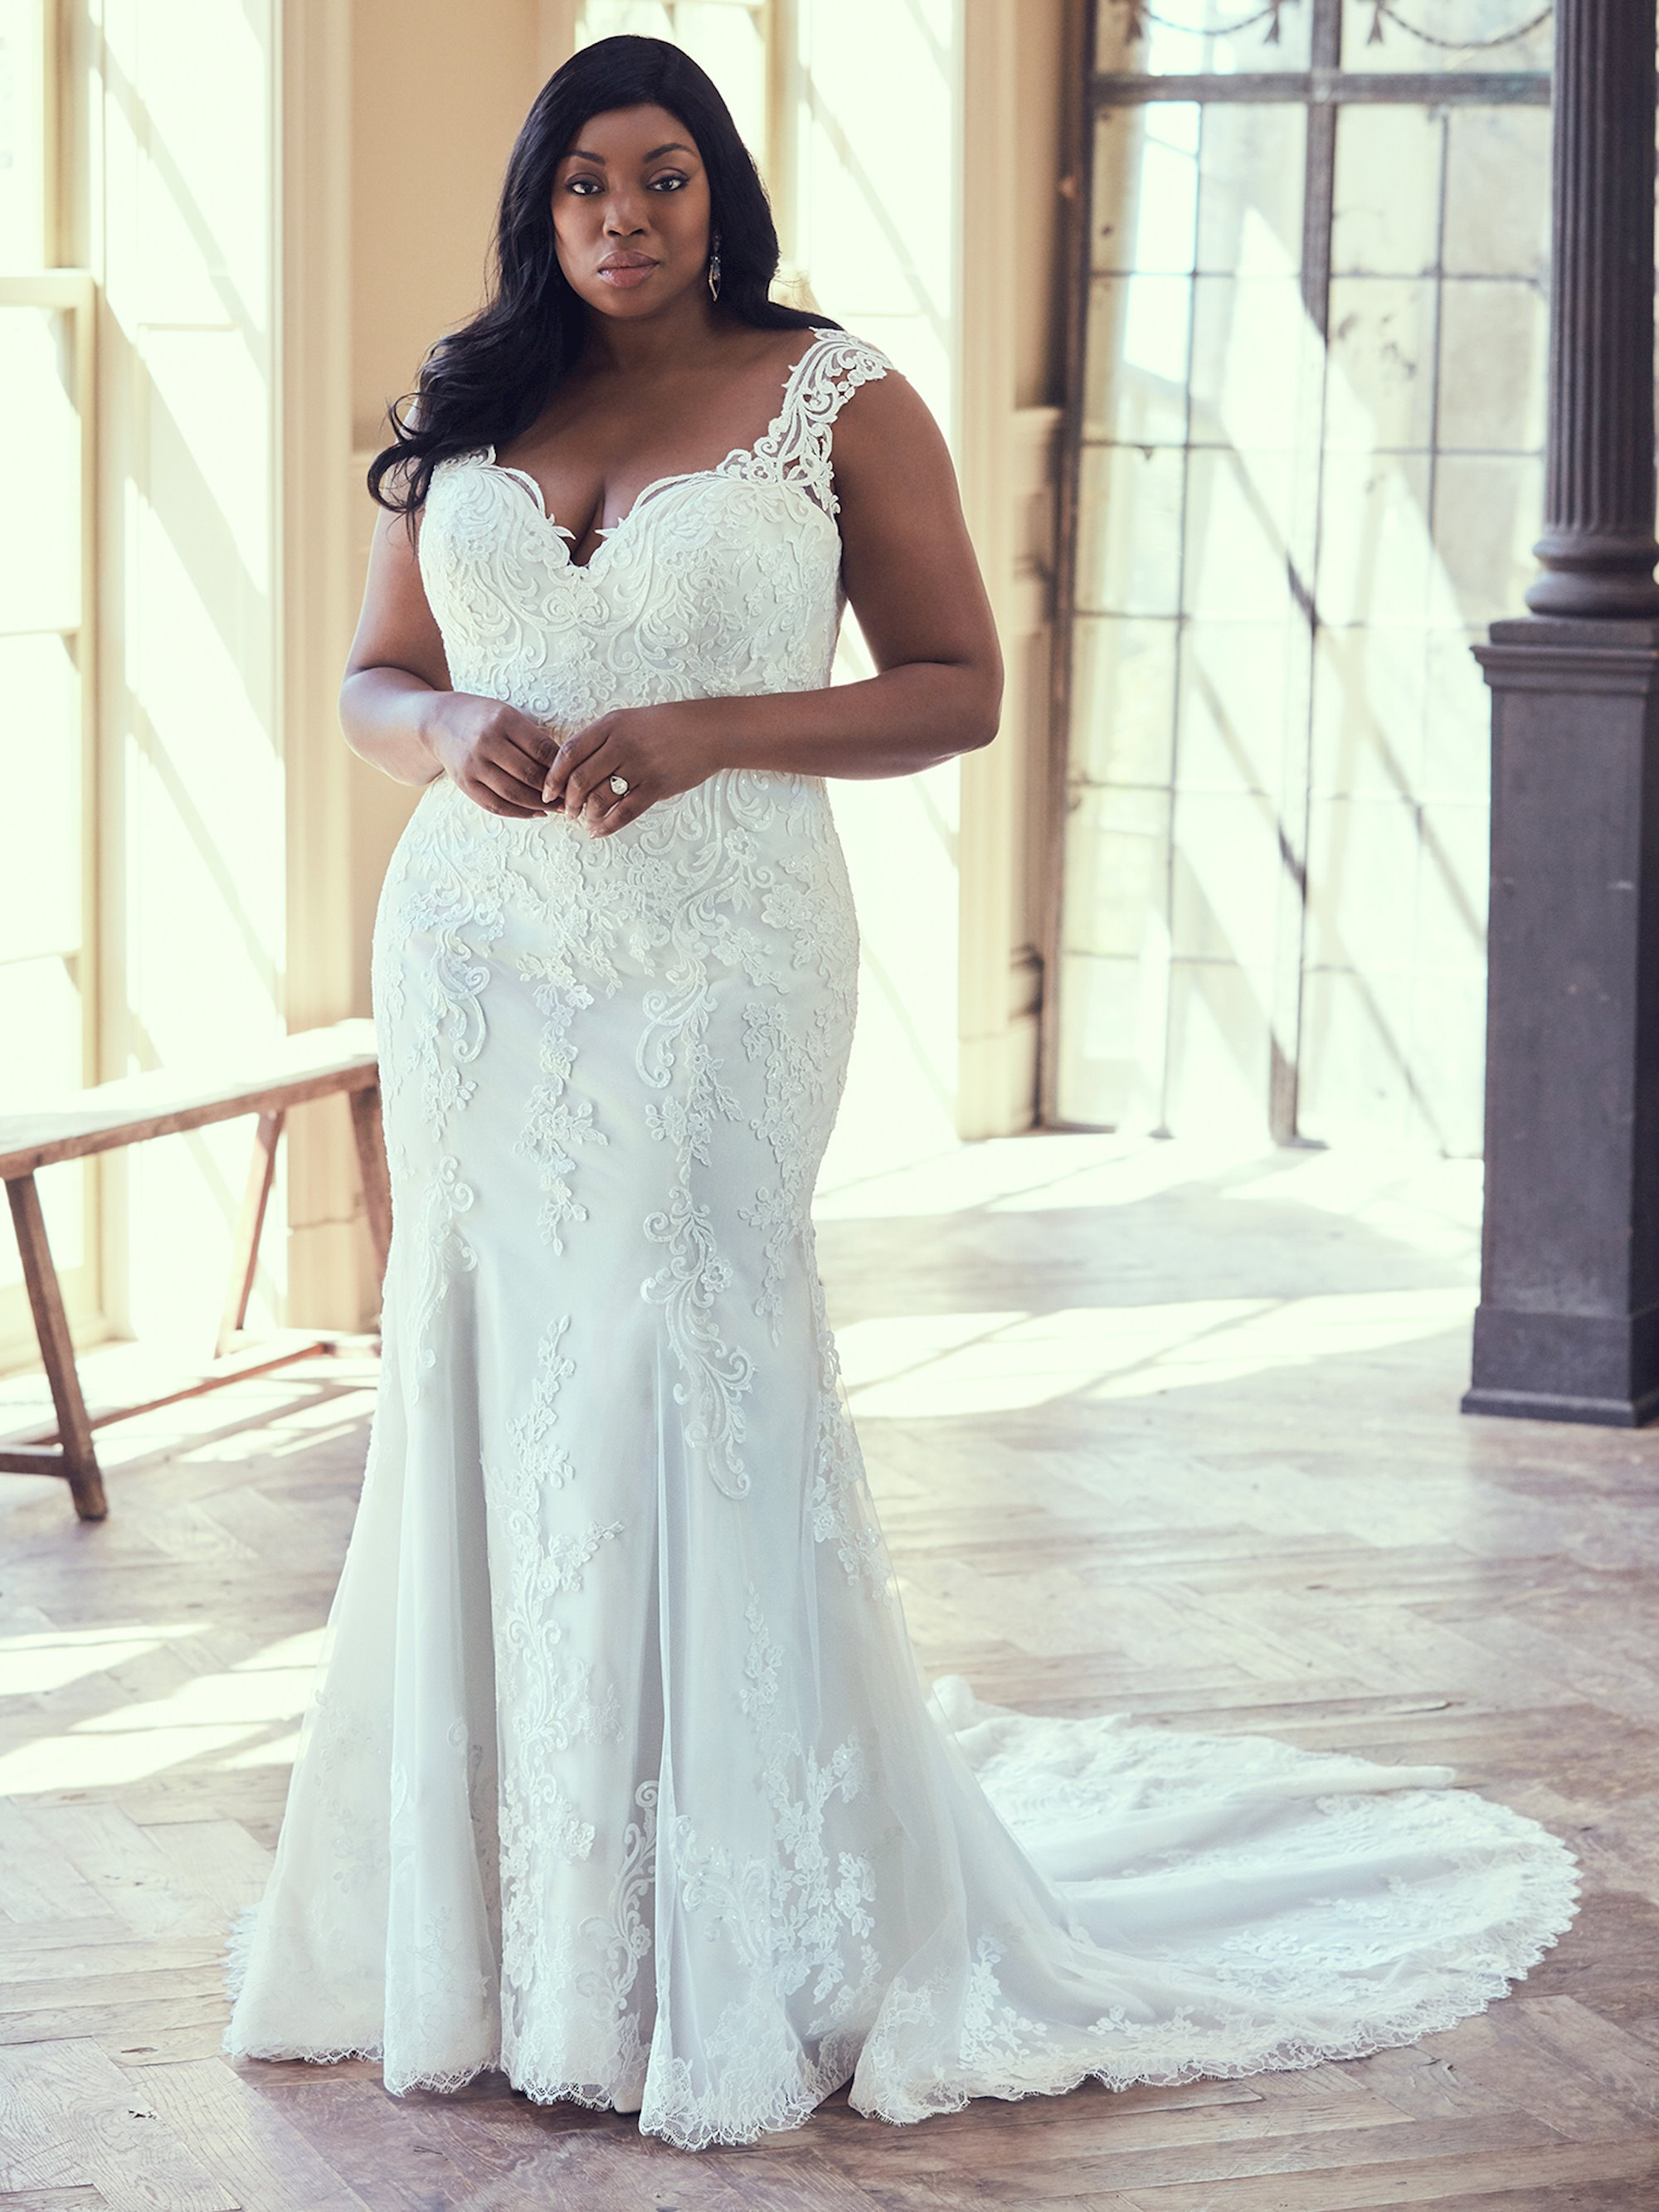 33 Gorgeous Plus Size Wedding Dresses For Every Style And ...